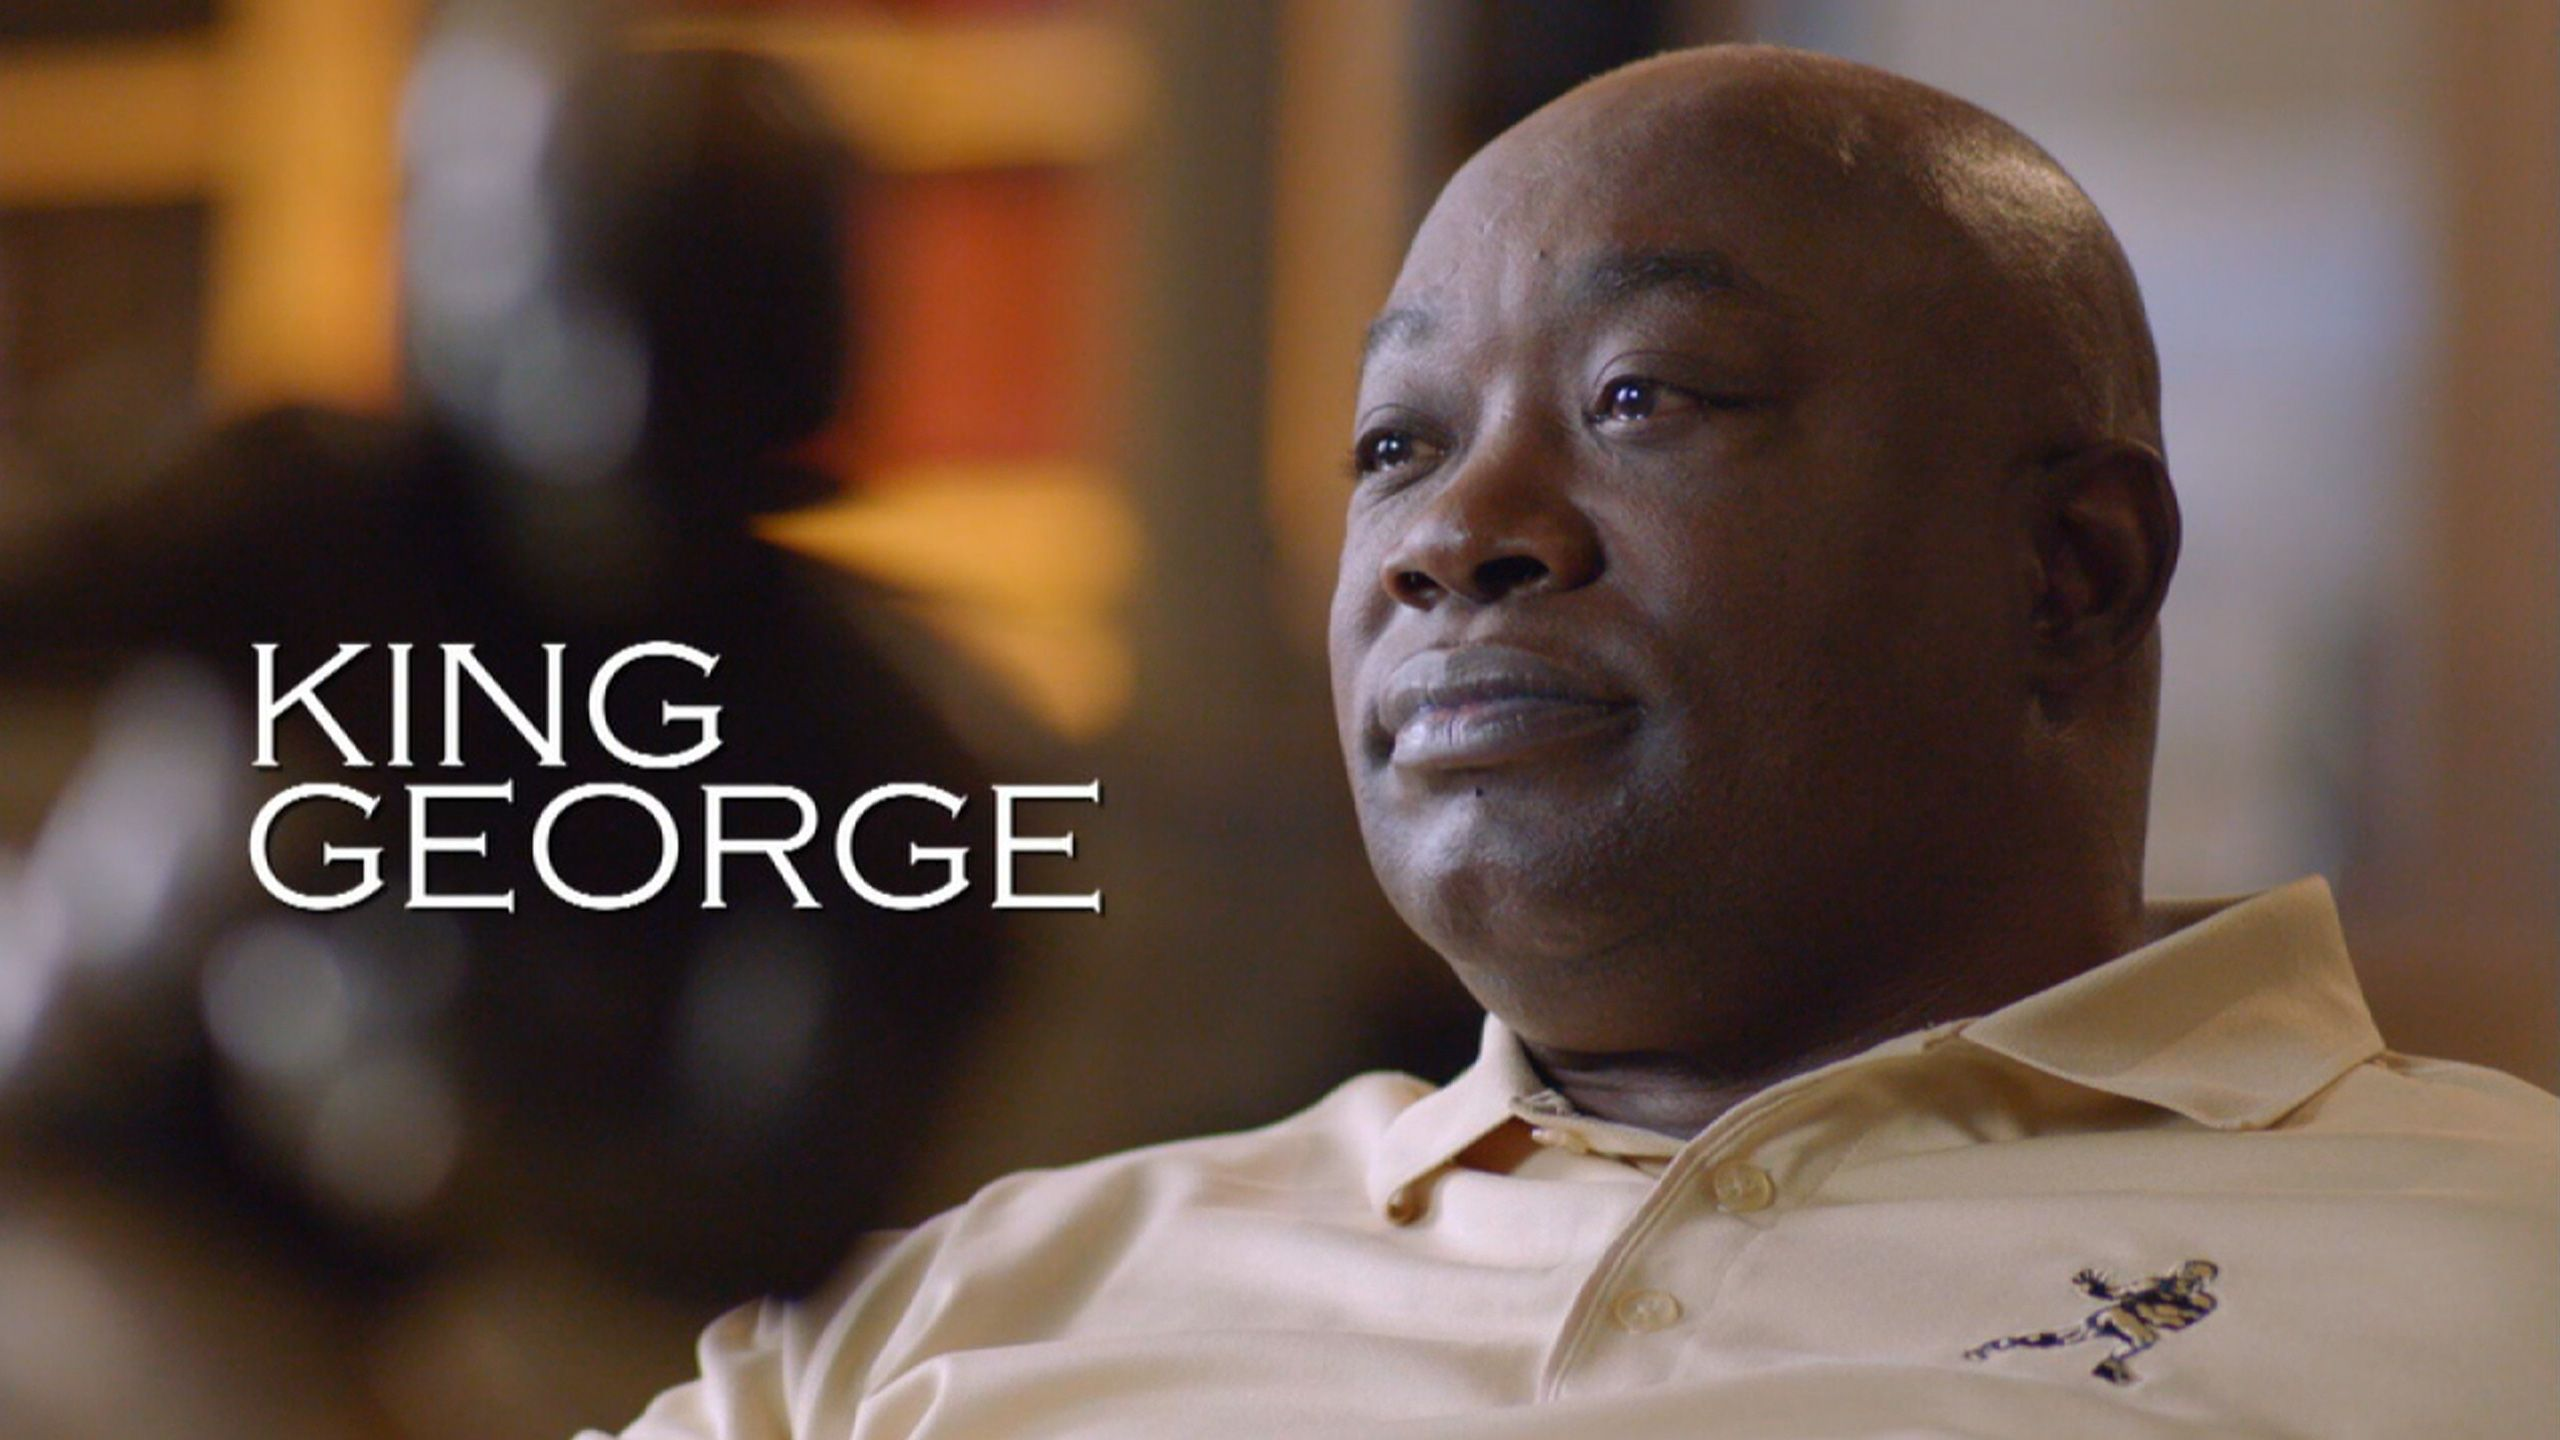 SEC Storied: King George Presented by Chick-fil-A